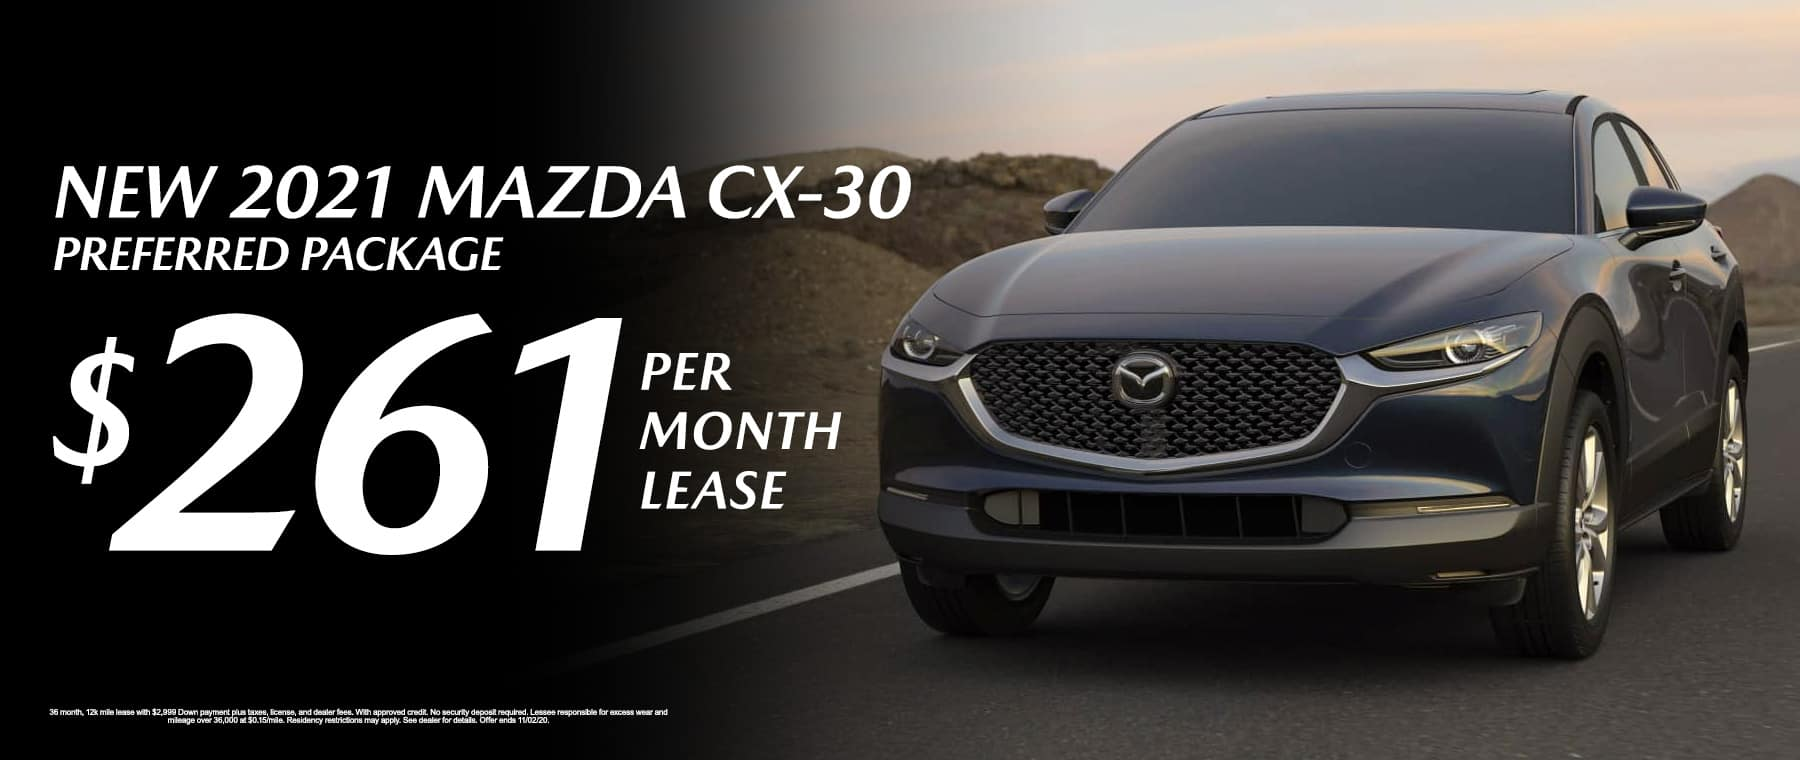 Lease a New 2021 Mazda CX-30 Preferred Package for $261/mo at Mazda of Fort Walton Beach